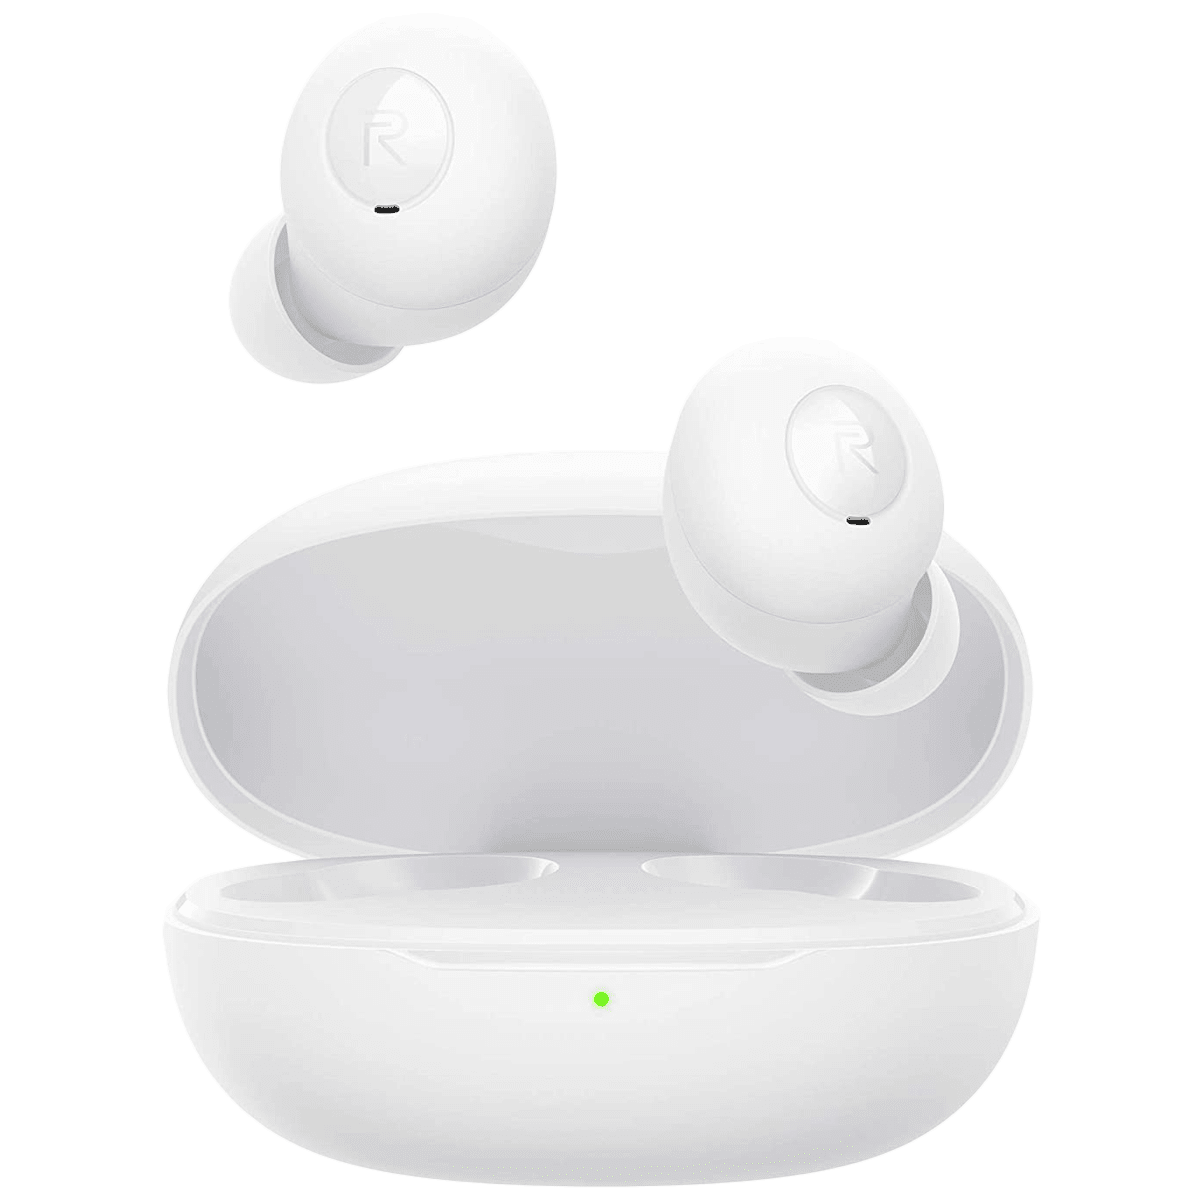 Realme Buds Q In-Ear Truly Wireless Earbuds with Mic (Bluetooth 5.0, Intelligent Touch Controls, RMA215, Quite White)